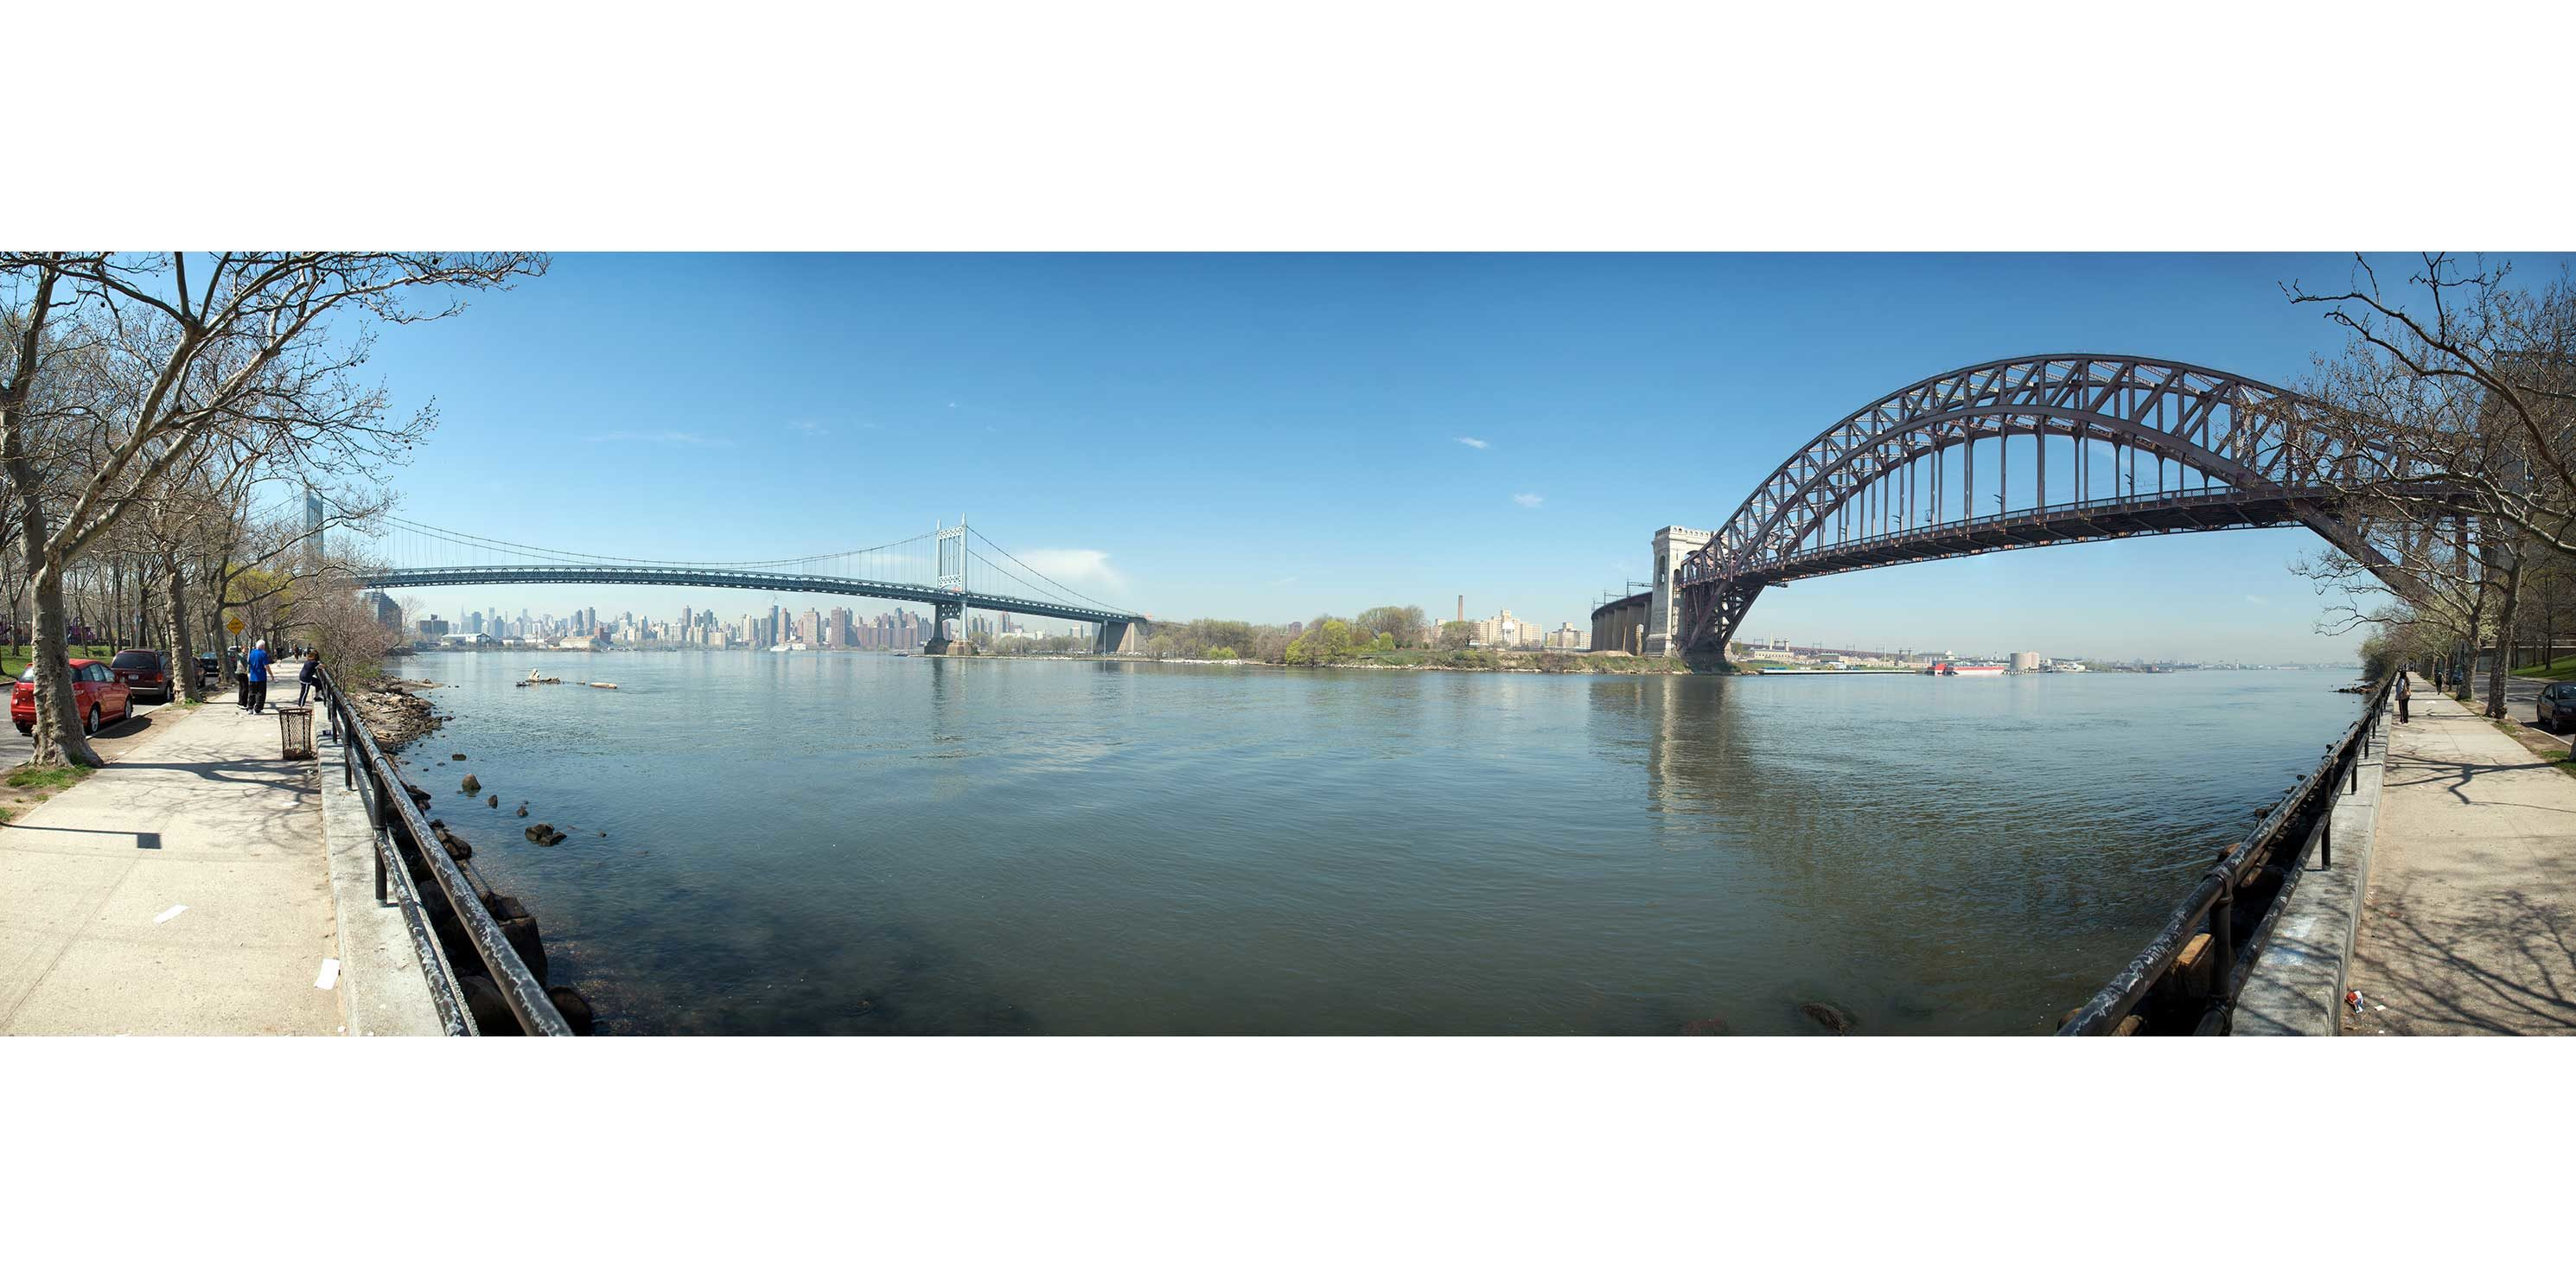 the Triborough (Robert F. Kennedy) Bridge and the Hell Gate Bridge as seen from Astoria Park